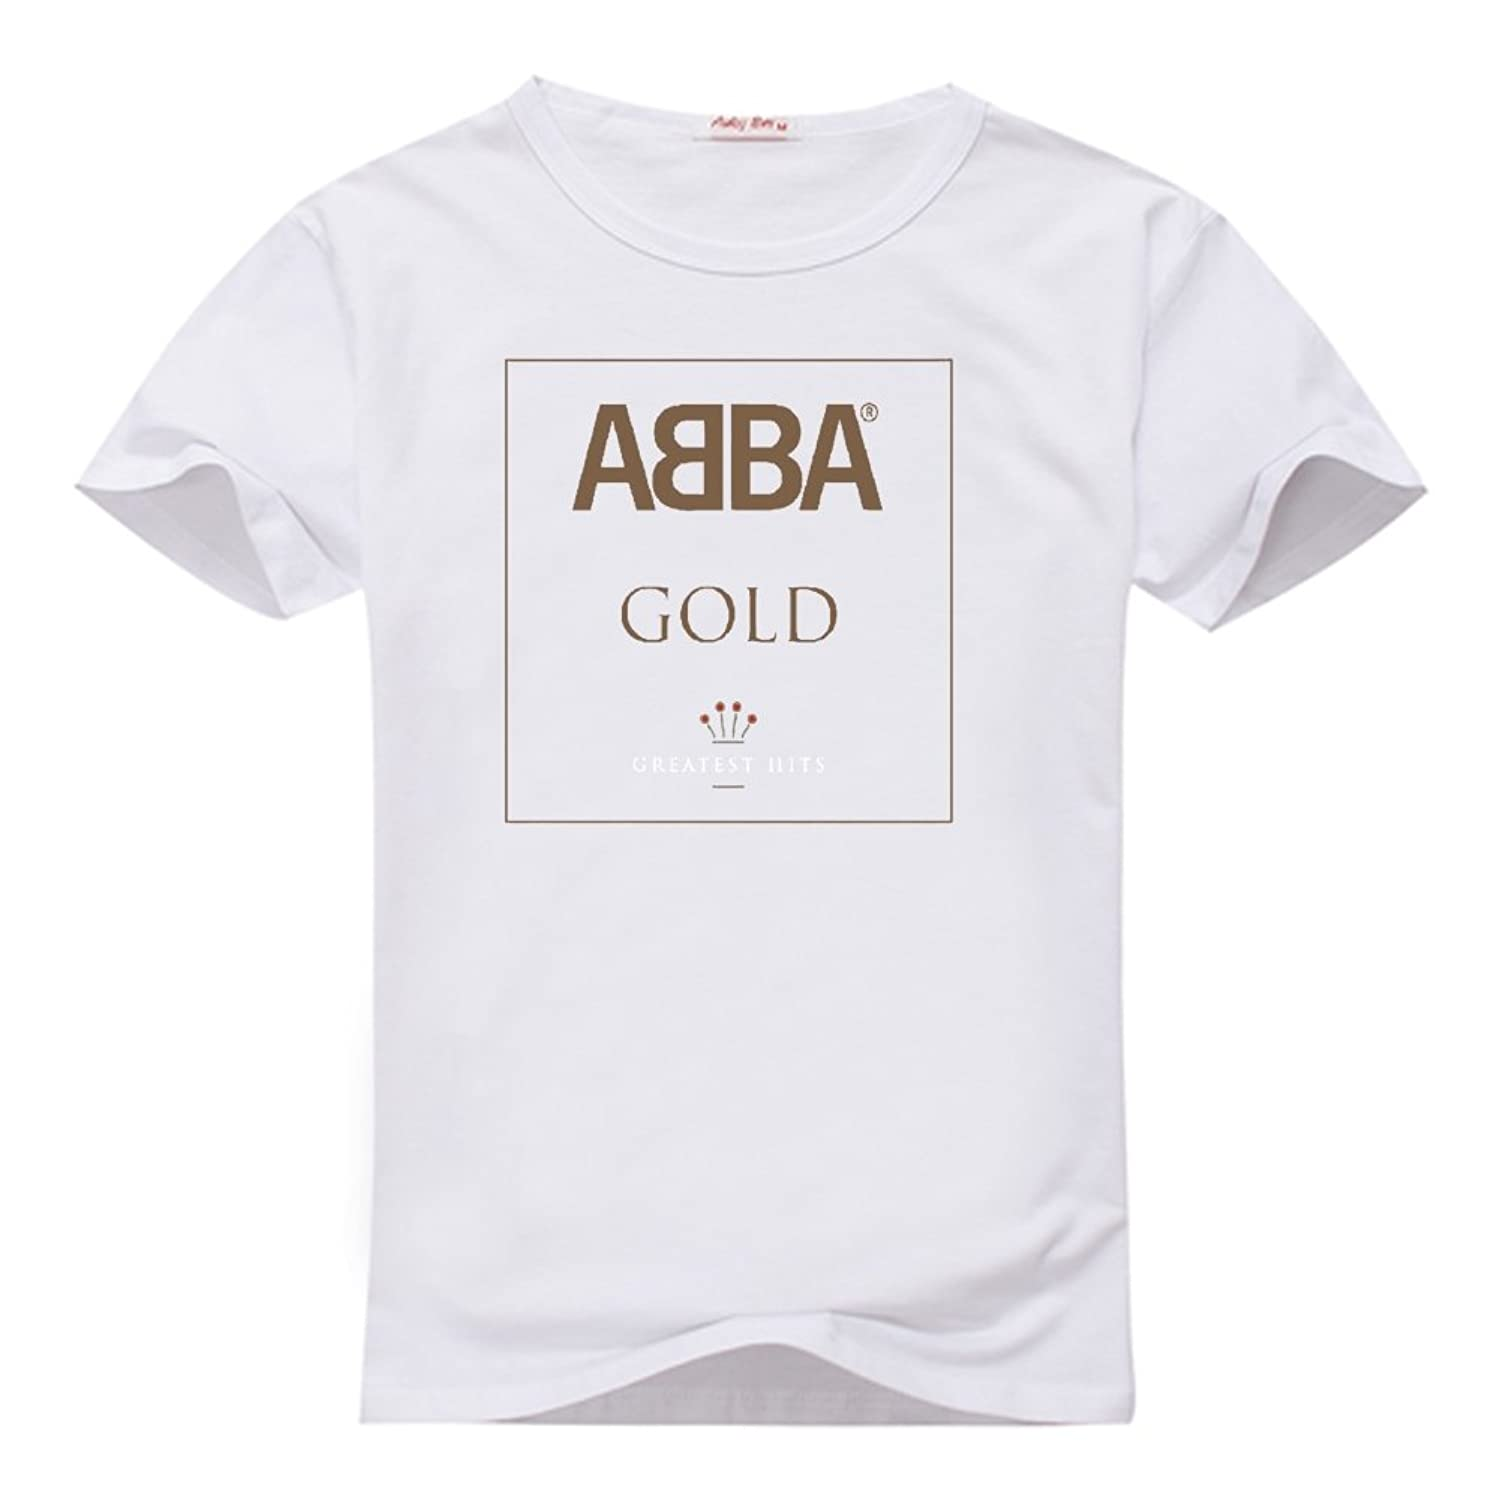 Fancesca Women's Abba Gold Greatest Hits Graphic Logo Printed Crew Neck Tops XL White